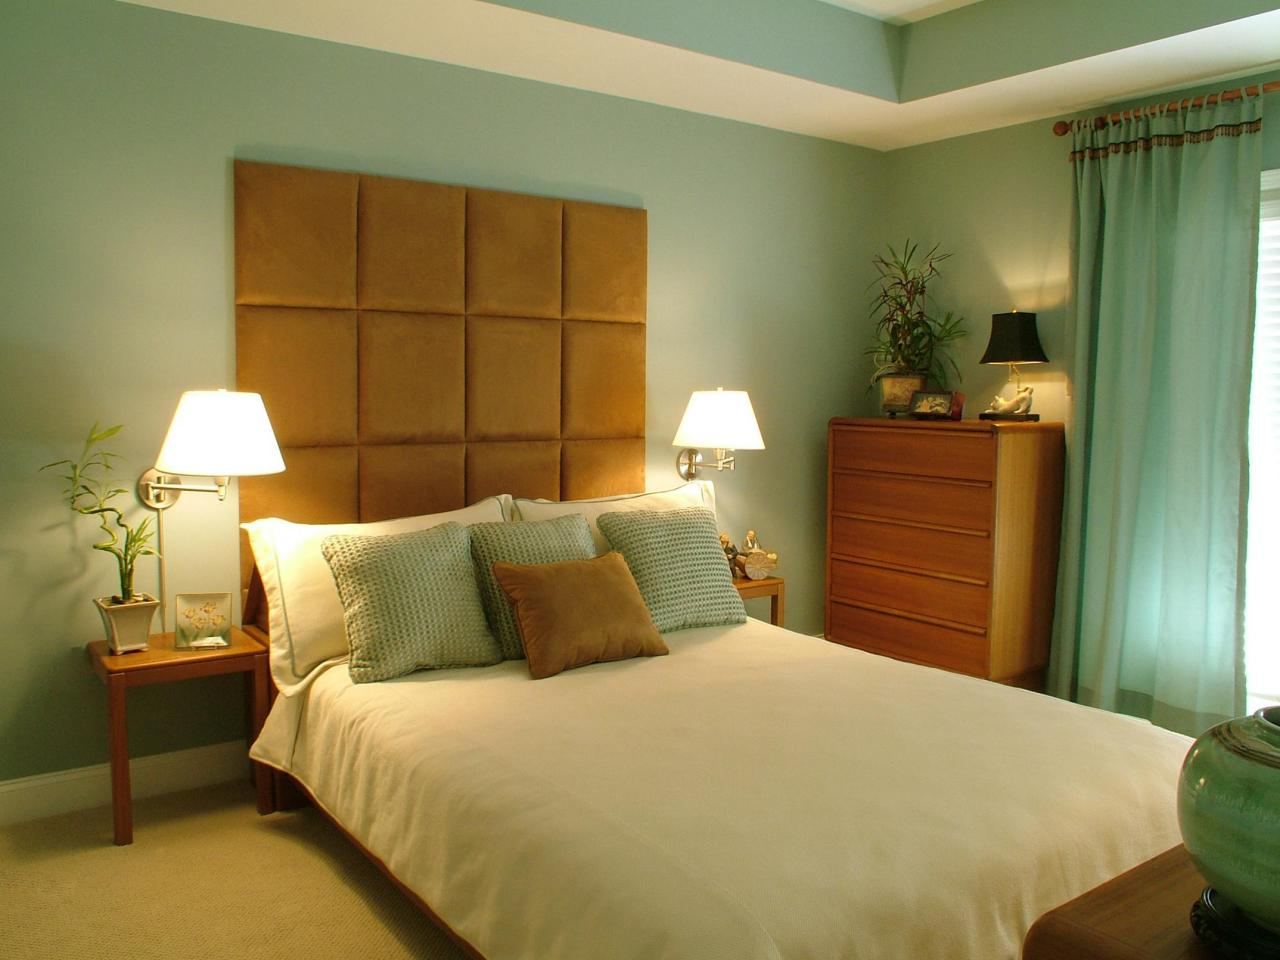 Wall Bedroom Bedroom Wall Color Schemes Pictures Options Ideas Hgtv